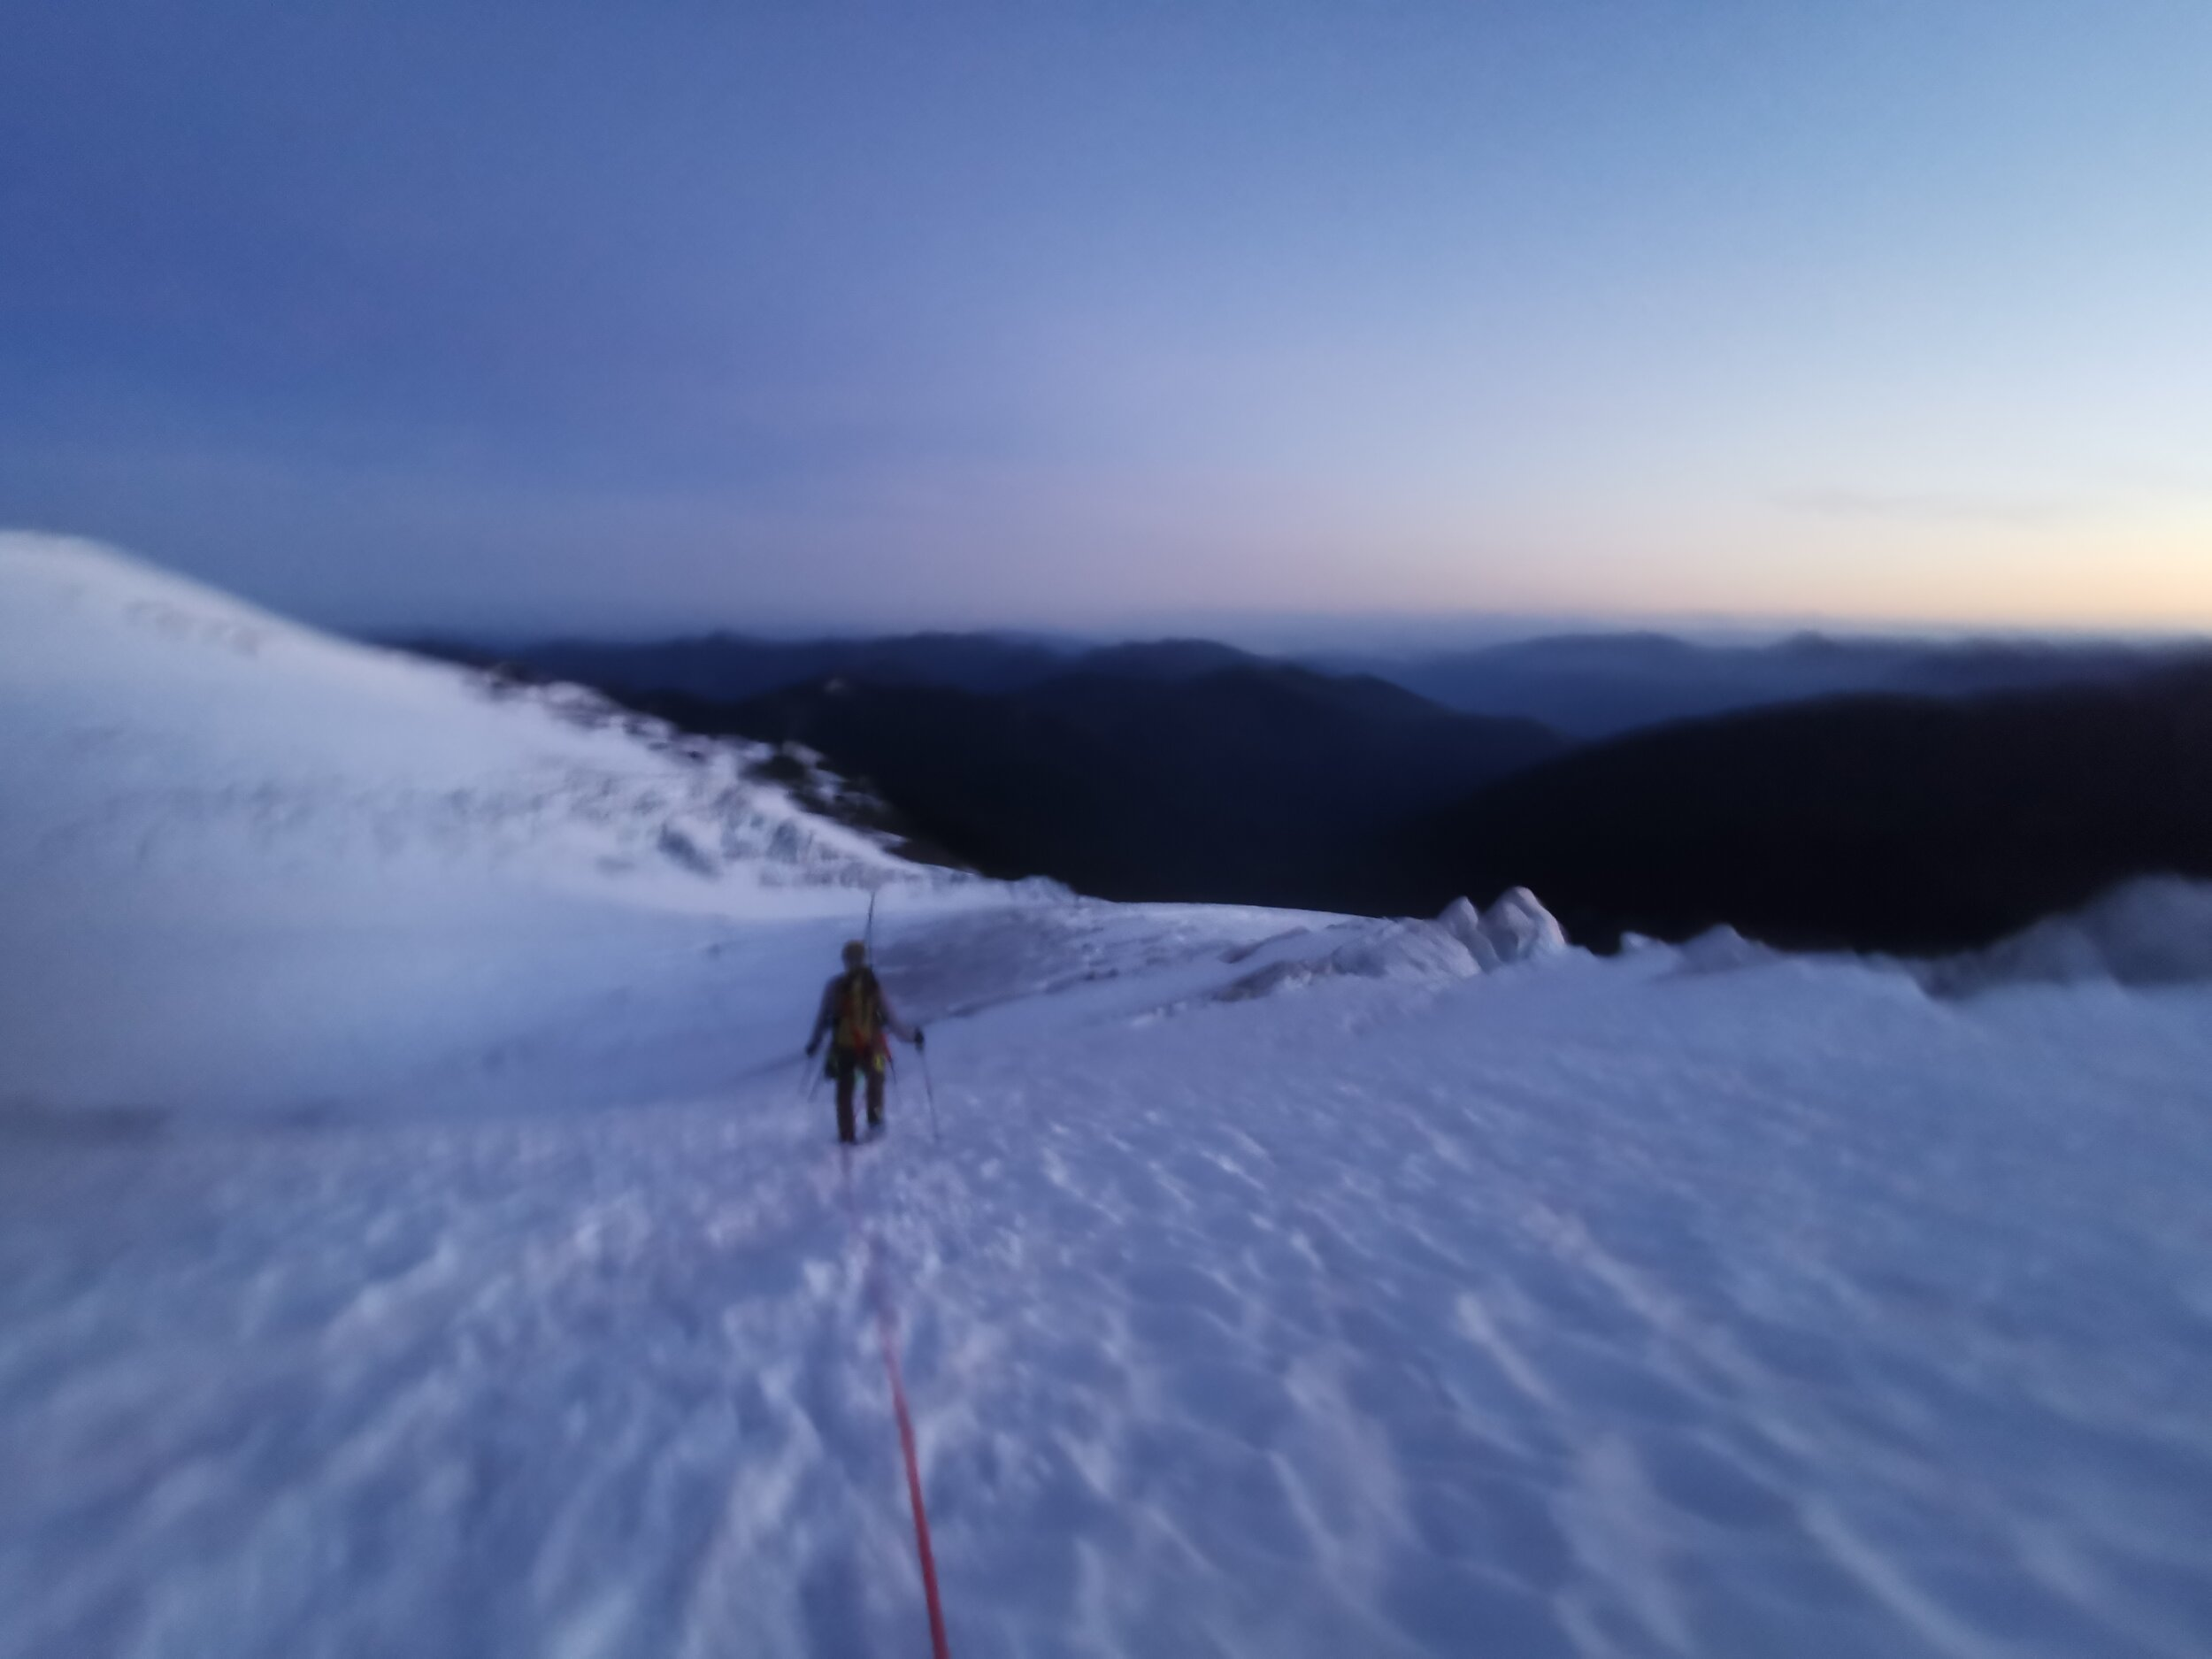 Blurry alpenglow morning shots as we descended and then navigated onto the route (how I usually feel at 4am). Some pretty large crevasses to get over across the main drag